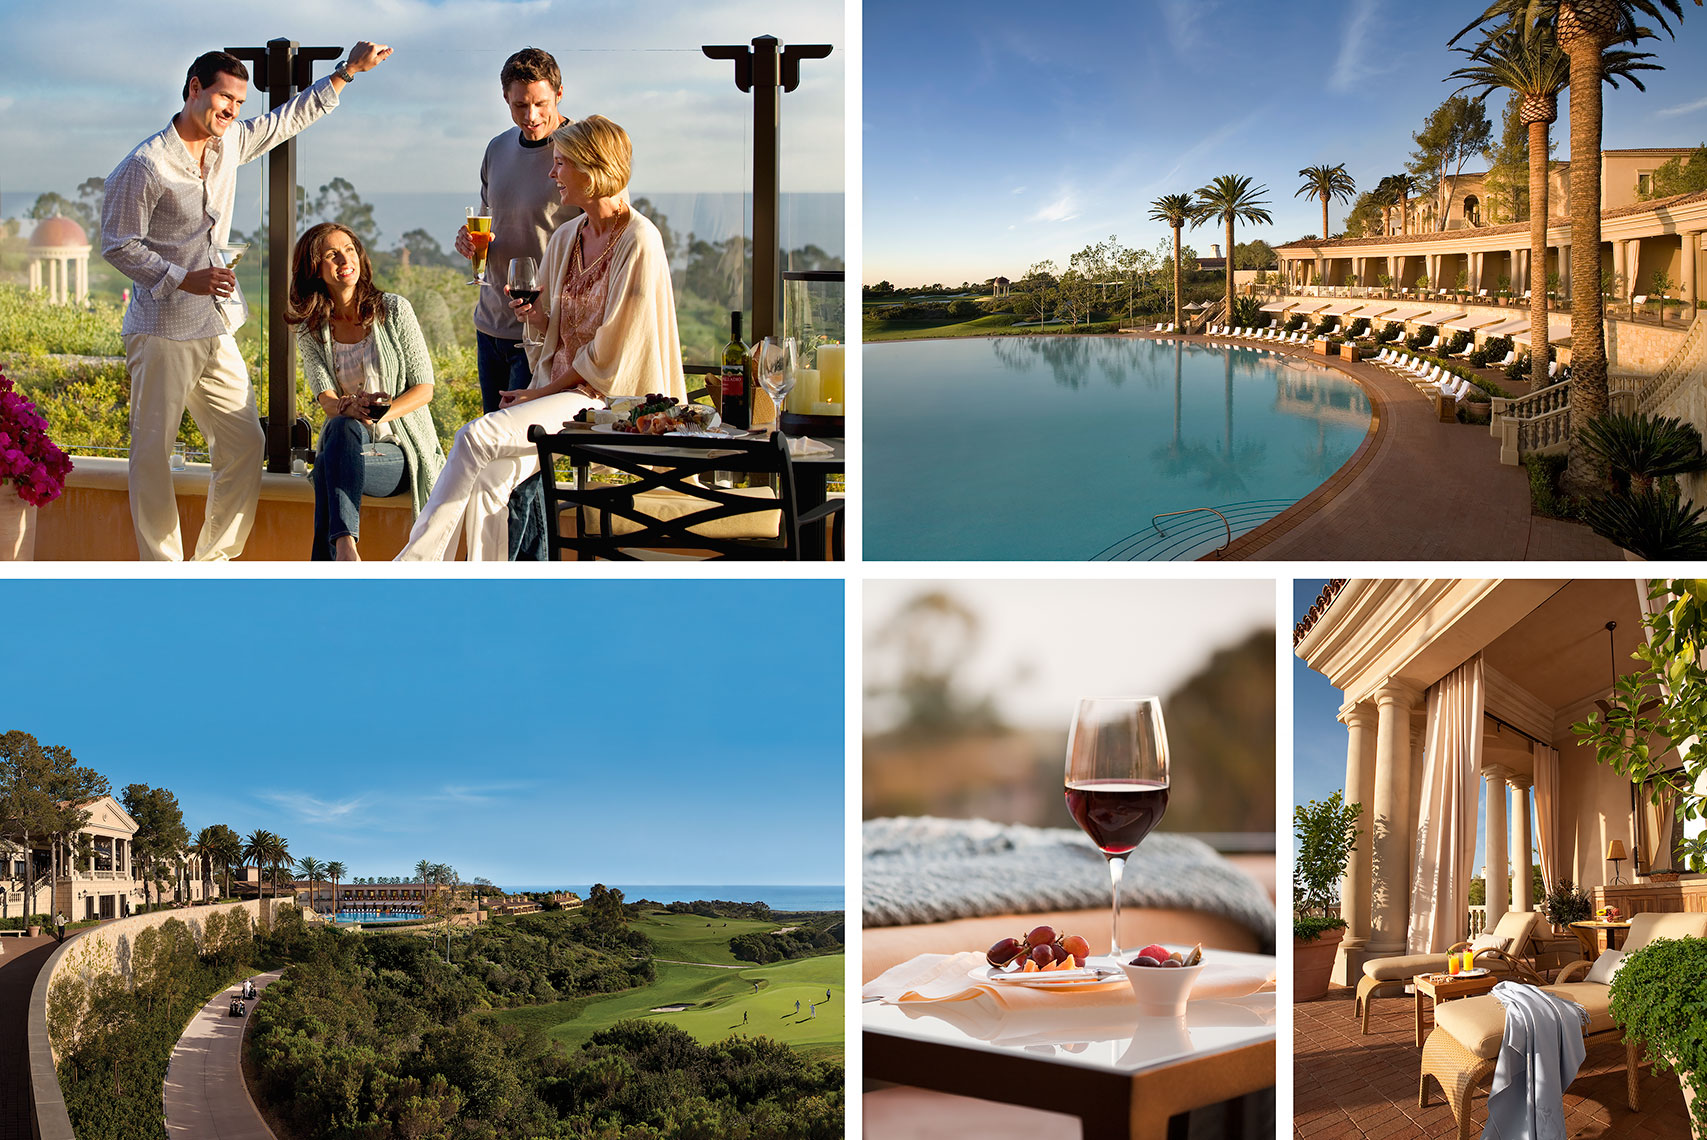 Luxury Lifestyle At The Resort Pelican Hill Newport Coast CA